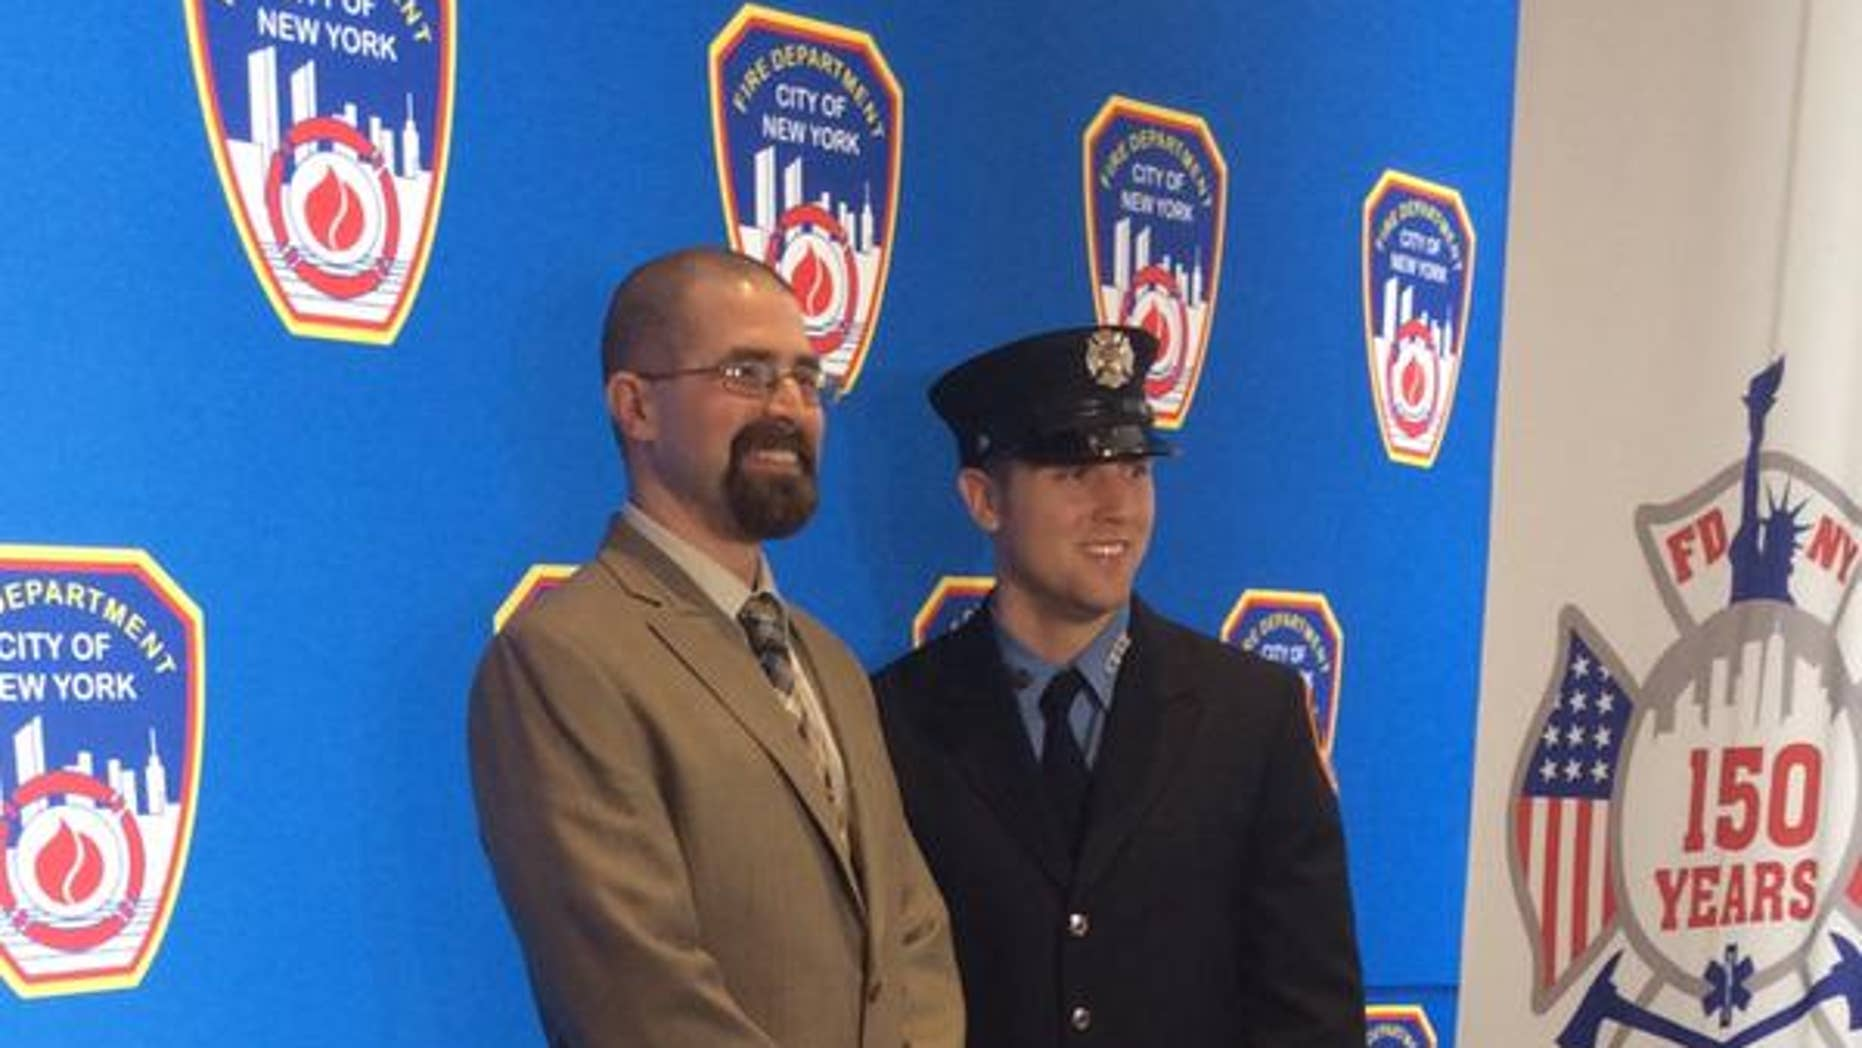 Former Marine Aaron Faulkner, left, meets FDNY firefighter Michael McCauley, right, who saved his life by donating bone marrow.